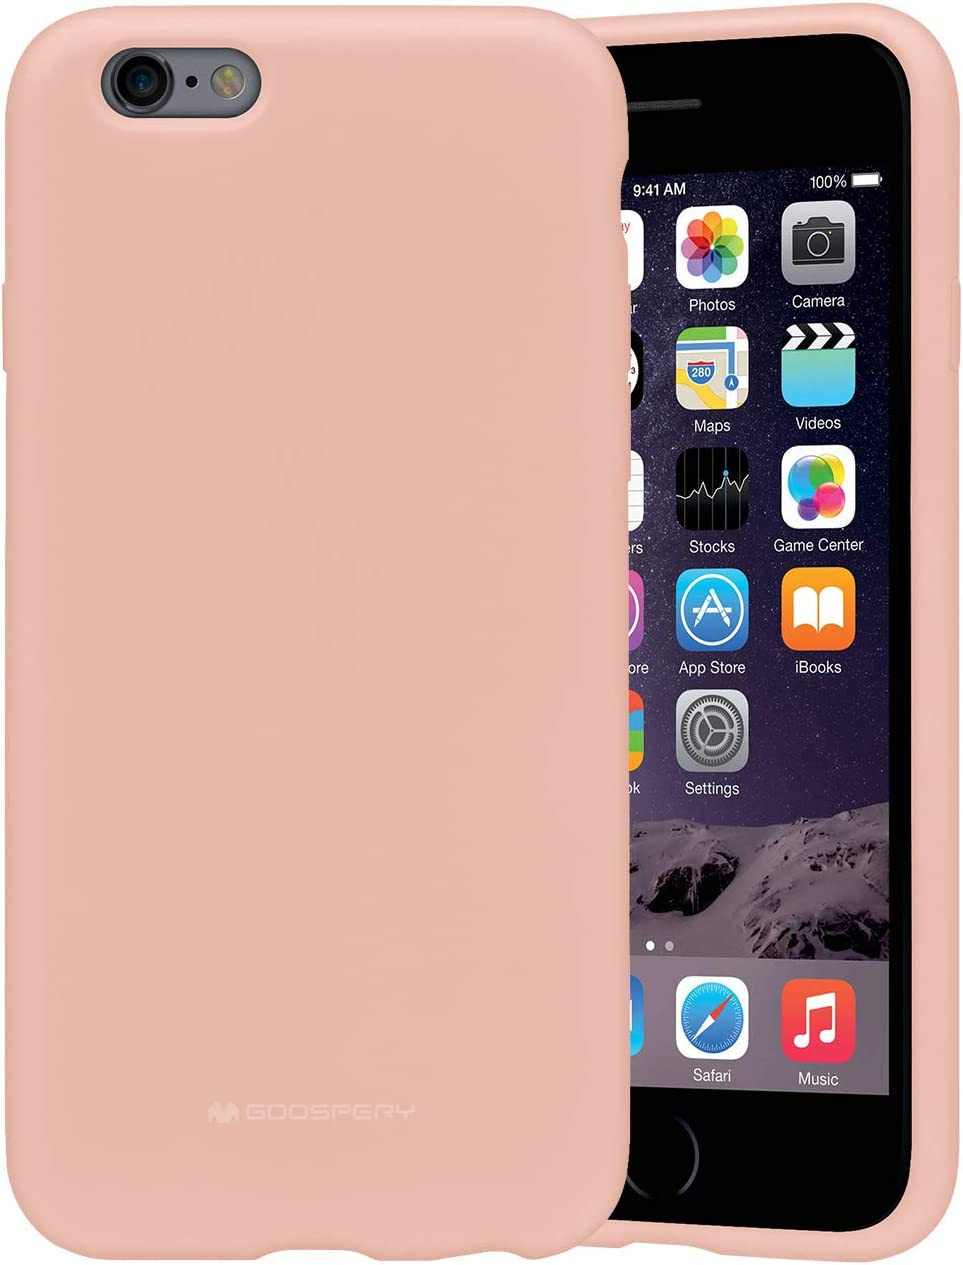 Goospery Liquid Silicone Case for iPhone 6 / iPhone 6s Jelly Rubber Bumper Case with Soft Microfiber Lining (Pink Sand) IP6-SLC-PNK